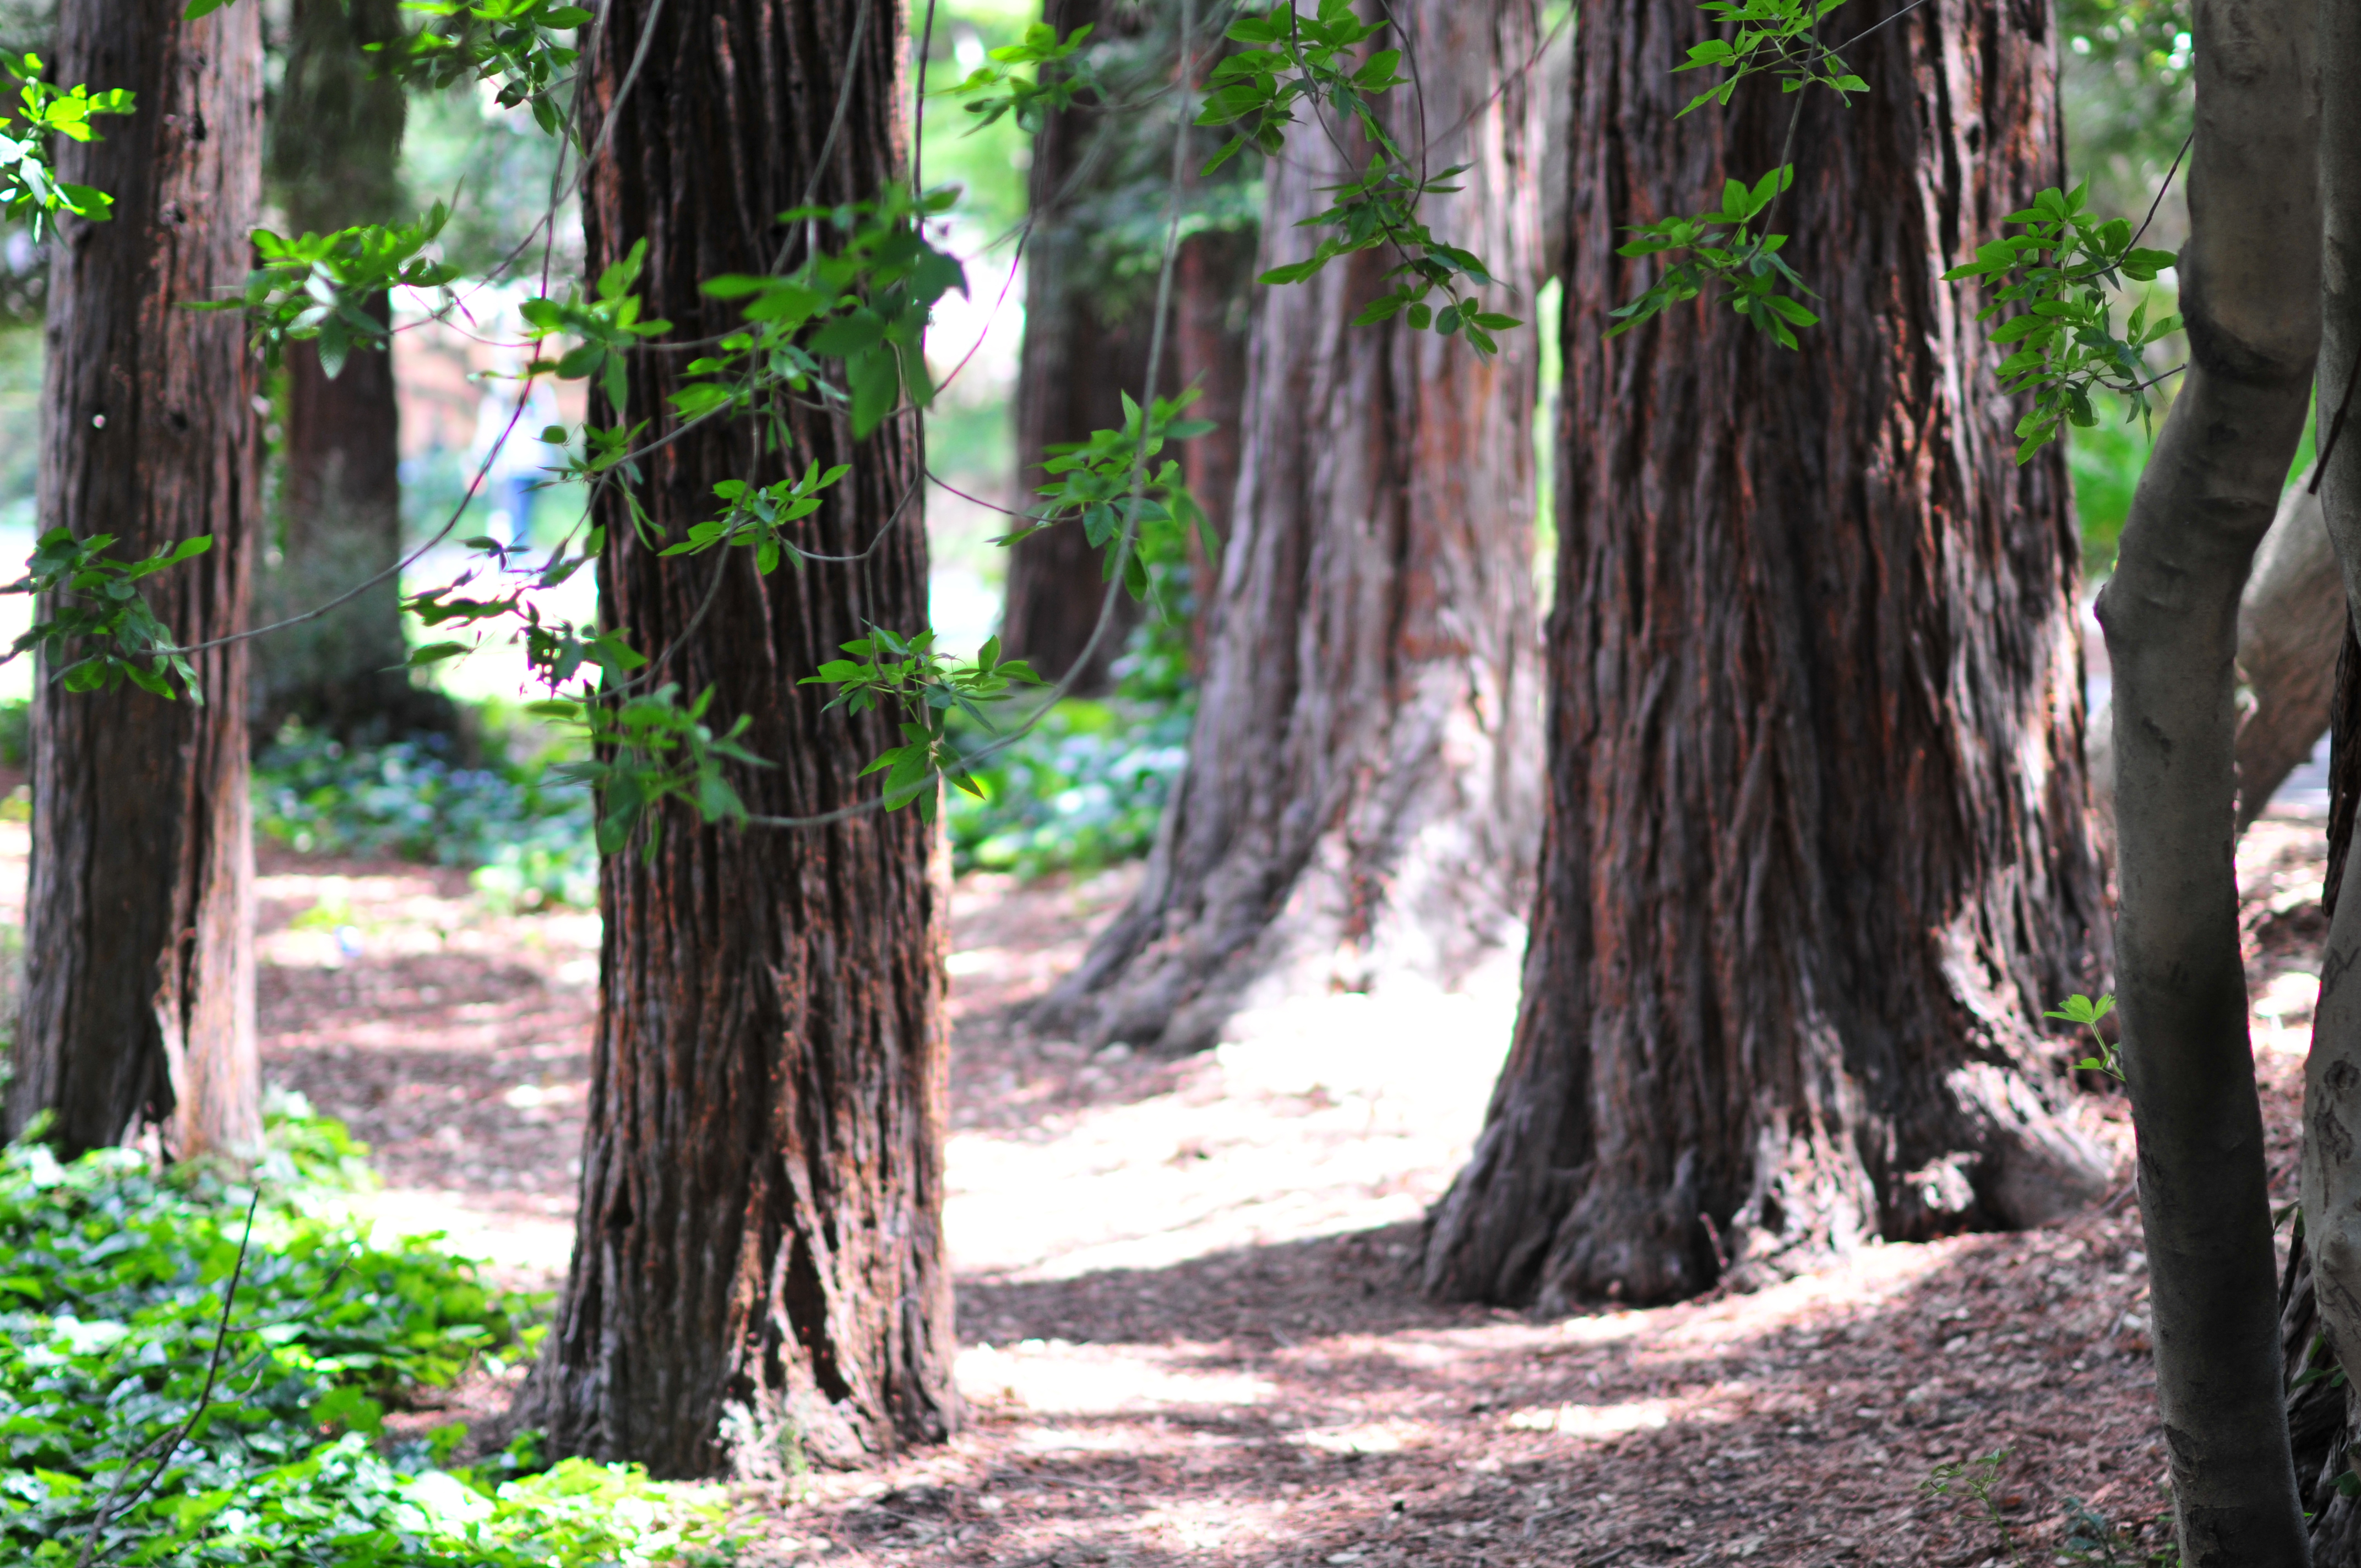 A grove of California Redwood trees on the UC Berkeley campus